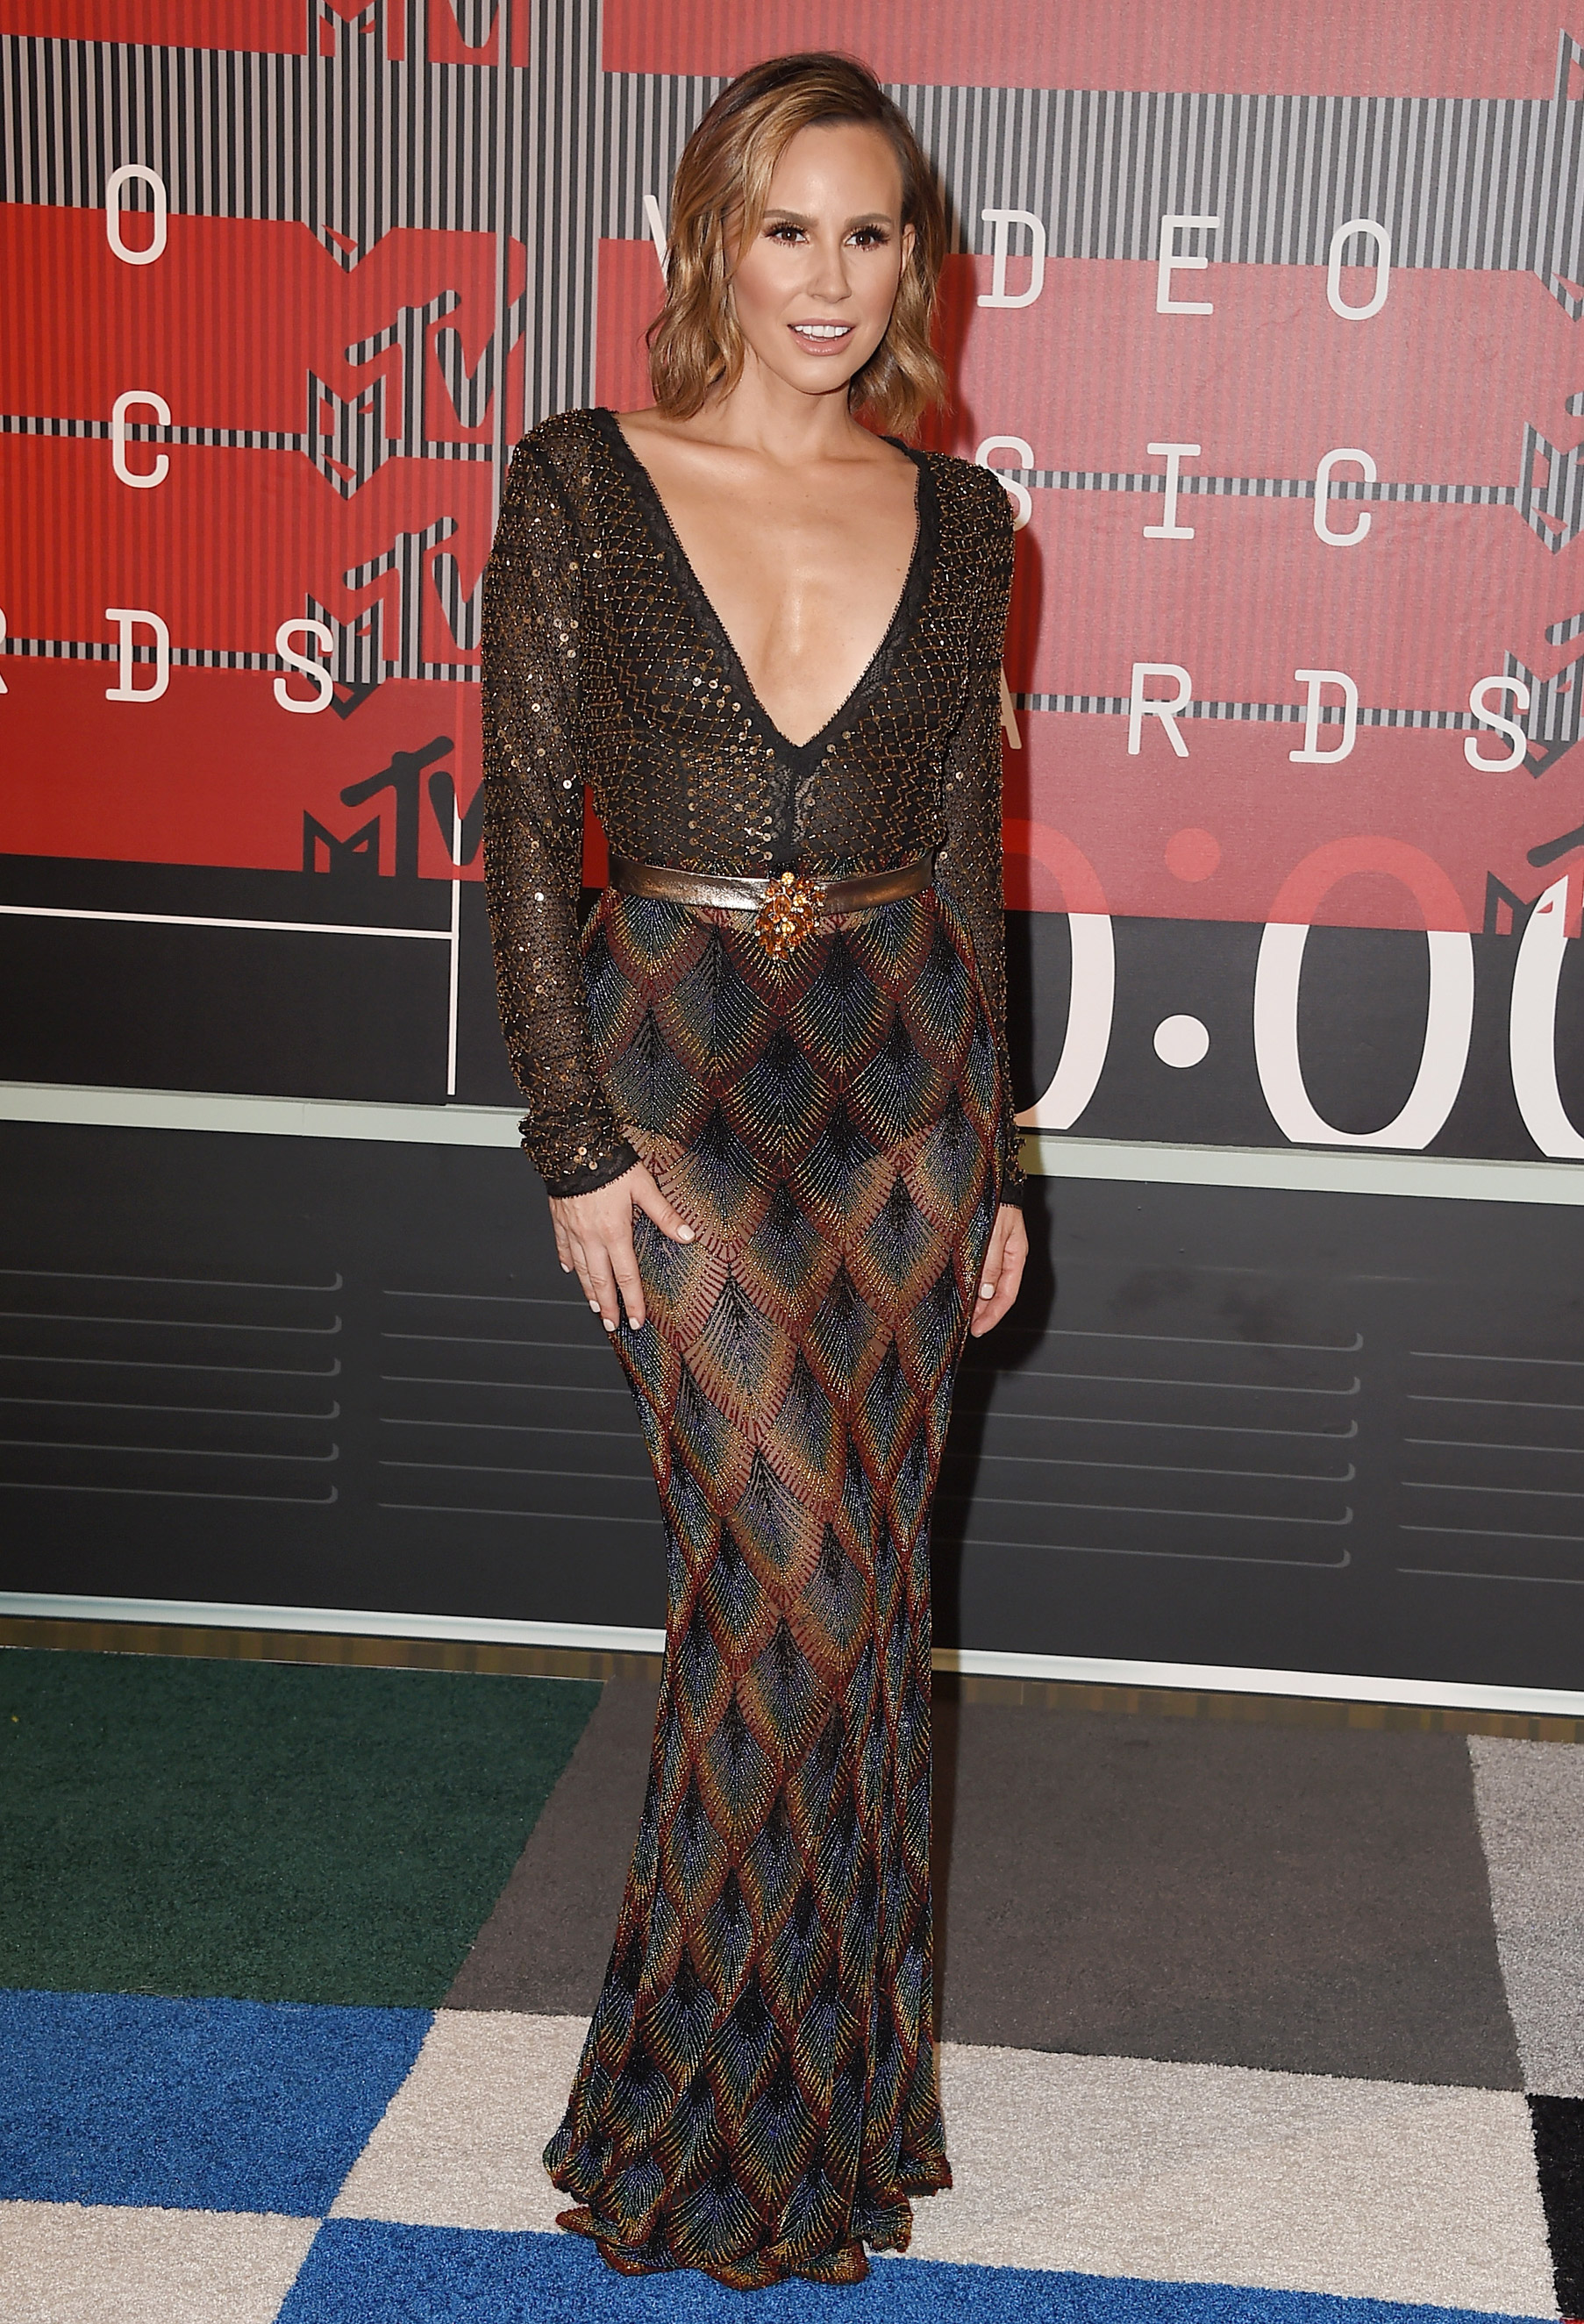 Melissa Rivers arrives at the 2015 MTV Video Music Awards at Microsoft Theater on Aug. 30, 2015 in Los Angeles.